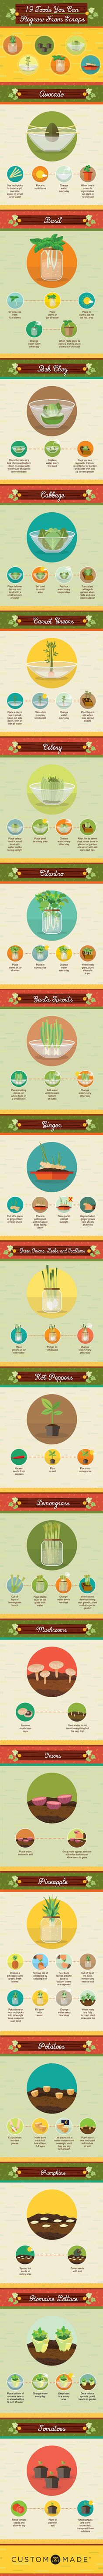 19 Foods You Can Regrow From Scraps PreparednessMama Growing Plants, Growing Vegetables, Vegetable Garden, Garden Plants, Organic Gardening, Gardening Tips, Indoor Gardening, Grow Your Own Food, Food Waste